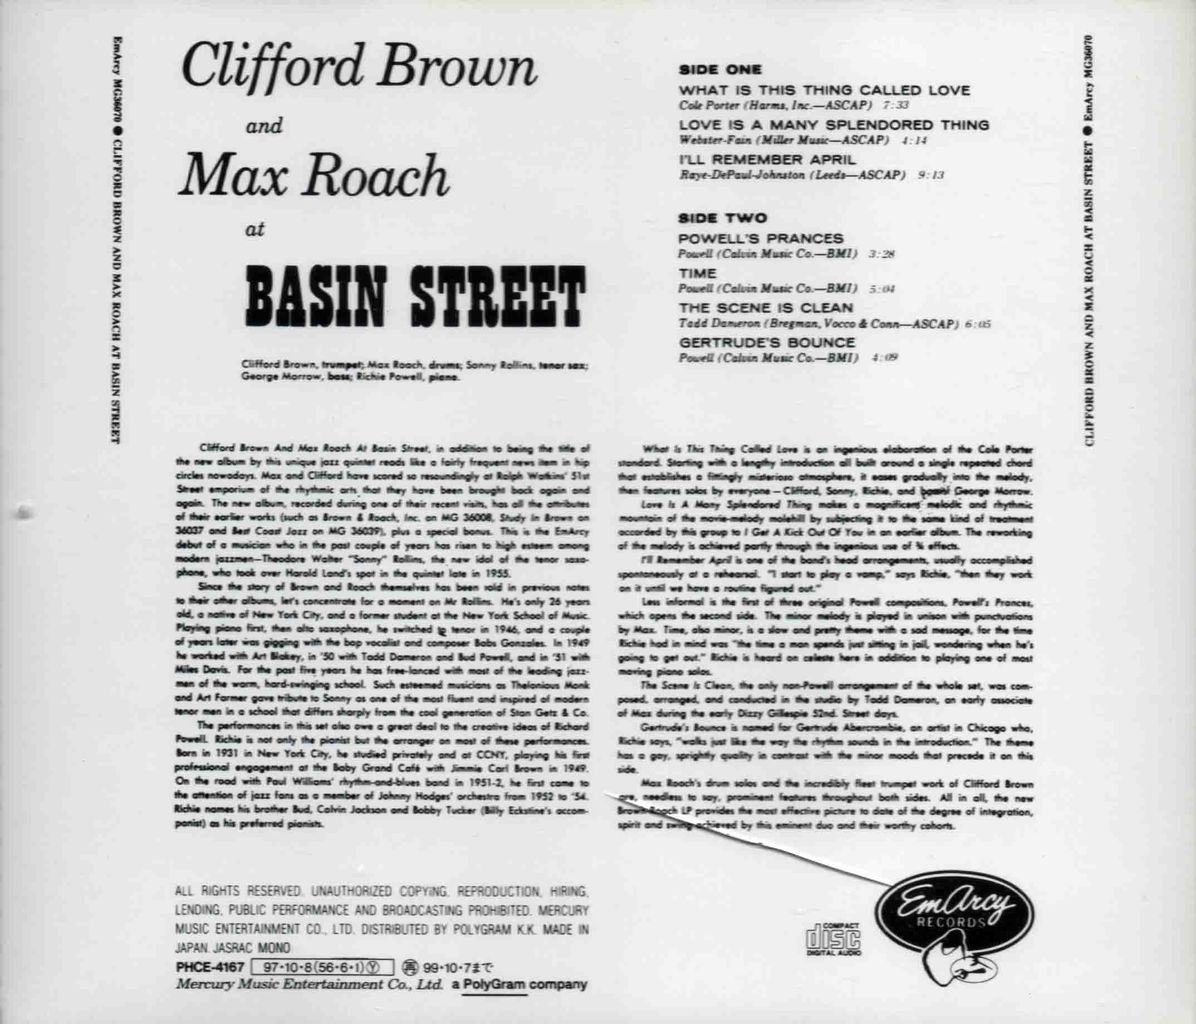 CLIFFORD BROWN AND MAX ROACH AT BASIN STREET-2